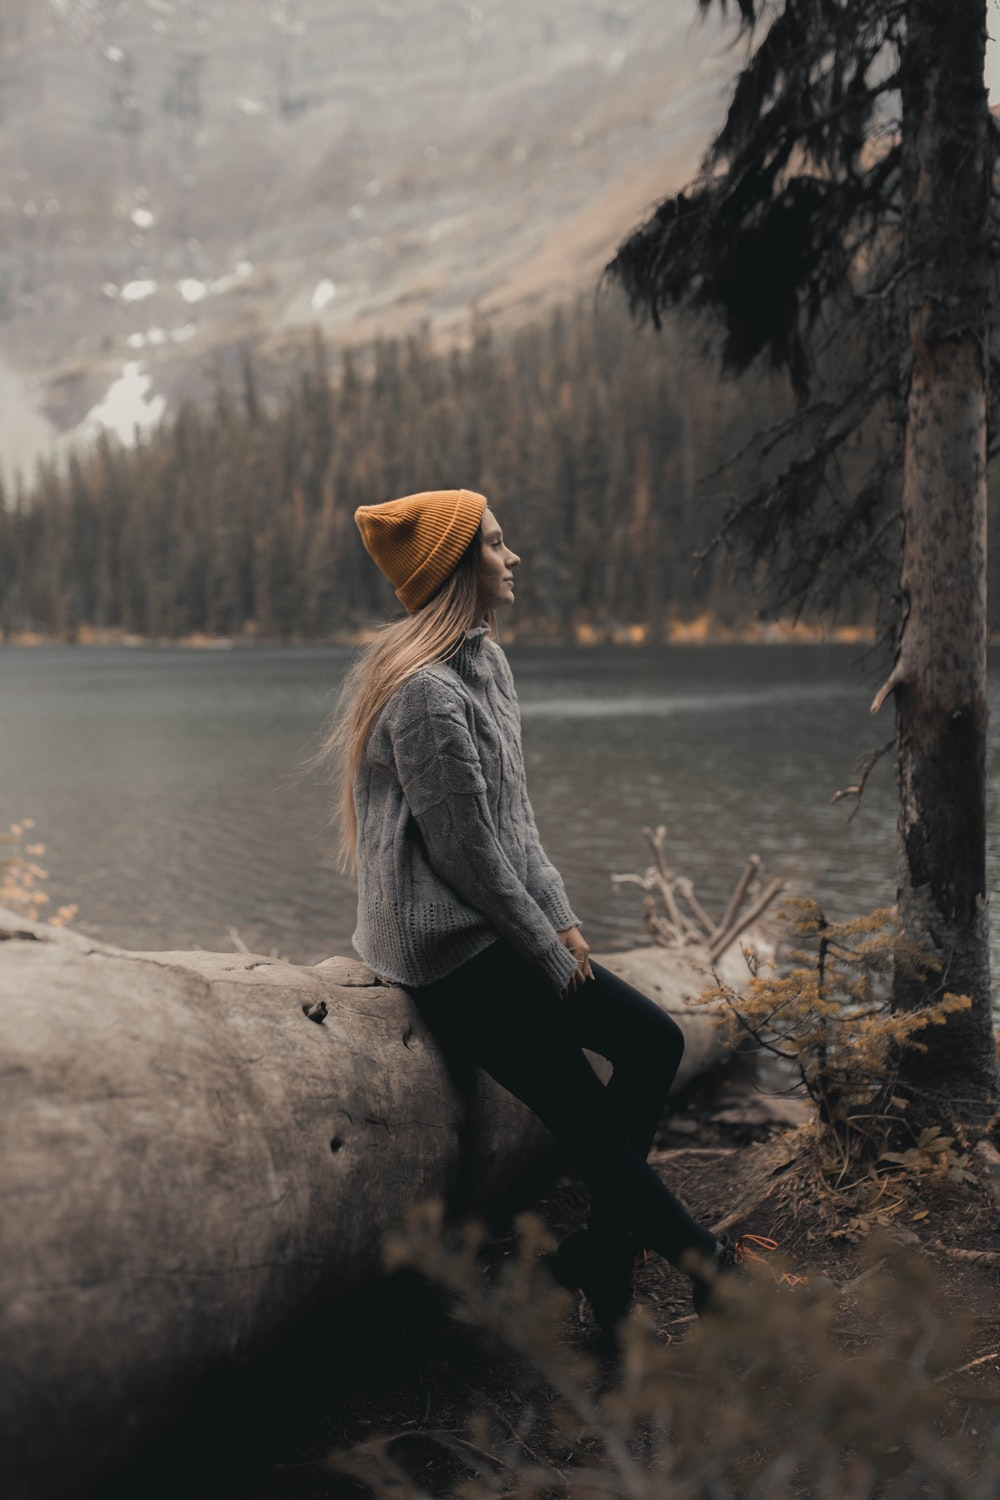 woman in gray sweater and black pants sitting on brown log near body of water during